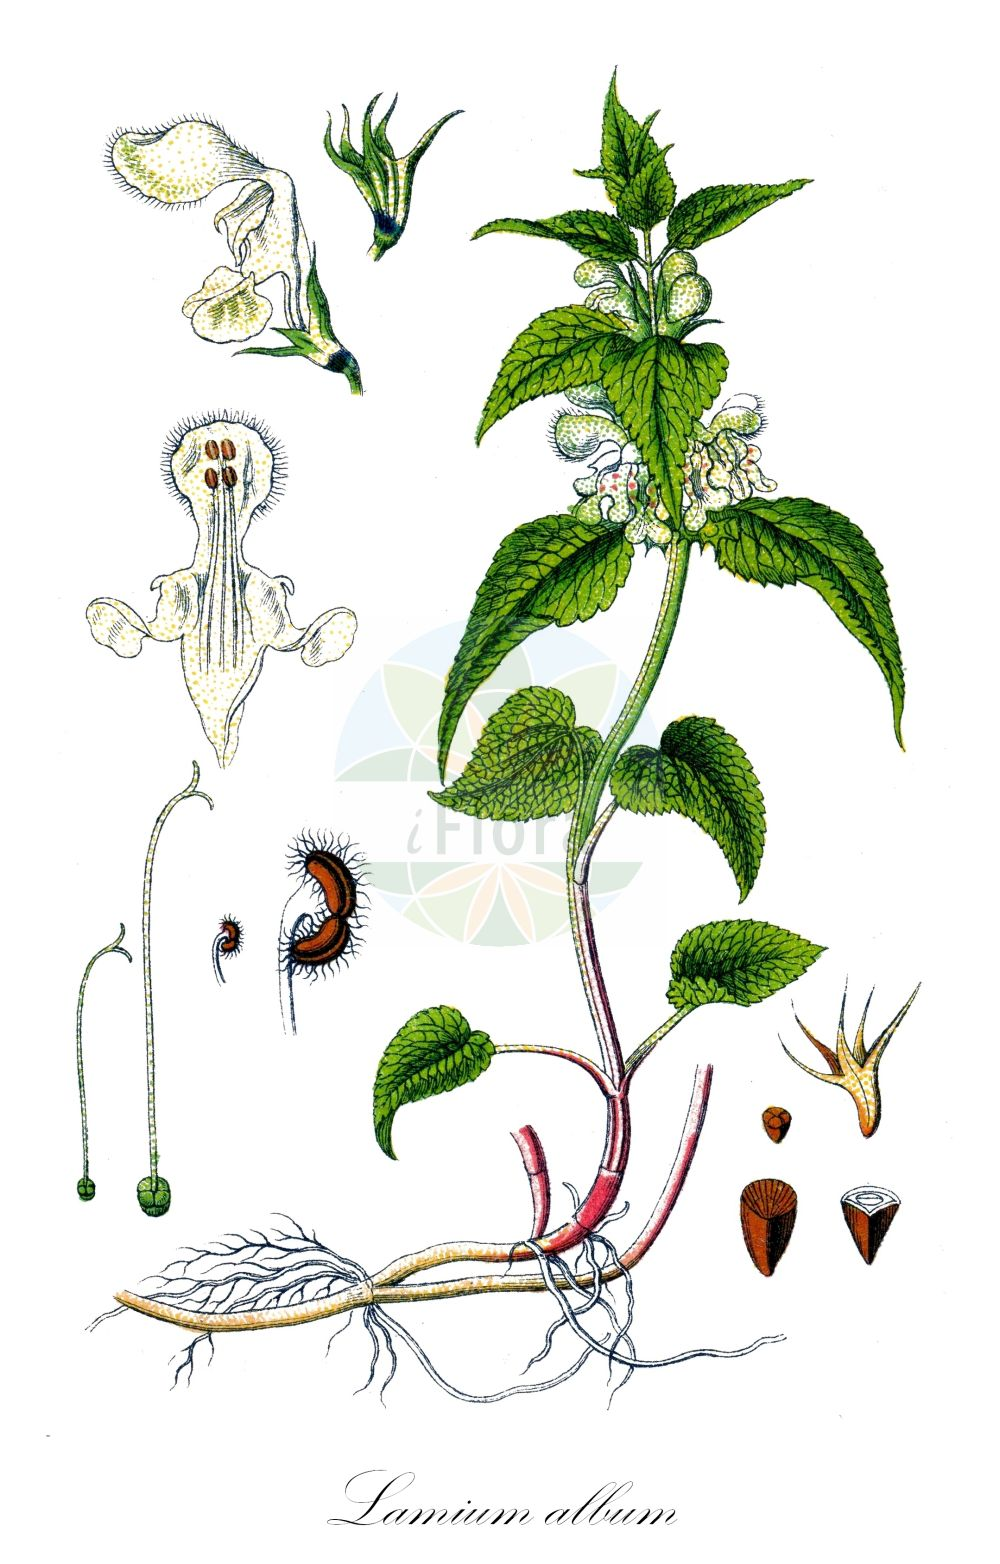 Historische Abbildung von Lamium album (Weisse Taubnessel - White Dead-nettle). Das Bild zeigt Blatt, Bluete, Frucht und Same. ---- Historical Drawing of Lamium album (Weisse Taubnessel - White Dead-nettle).The image is showing leaf, flower, fruit and seed.(Lamium album,Weisse Taubnessel,White Dead-nettle,Lamium vulgatum var. album,White Archangel,Lamium,Taubnessel,Deadnettle,Lamiaceae,Lippenbluetengewaechse;Lippenbluetler,Nettle family,Blatt,Bluete,Frucht,Same,leaf,flower,fruit,seed,Sturm (1796f))